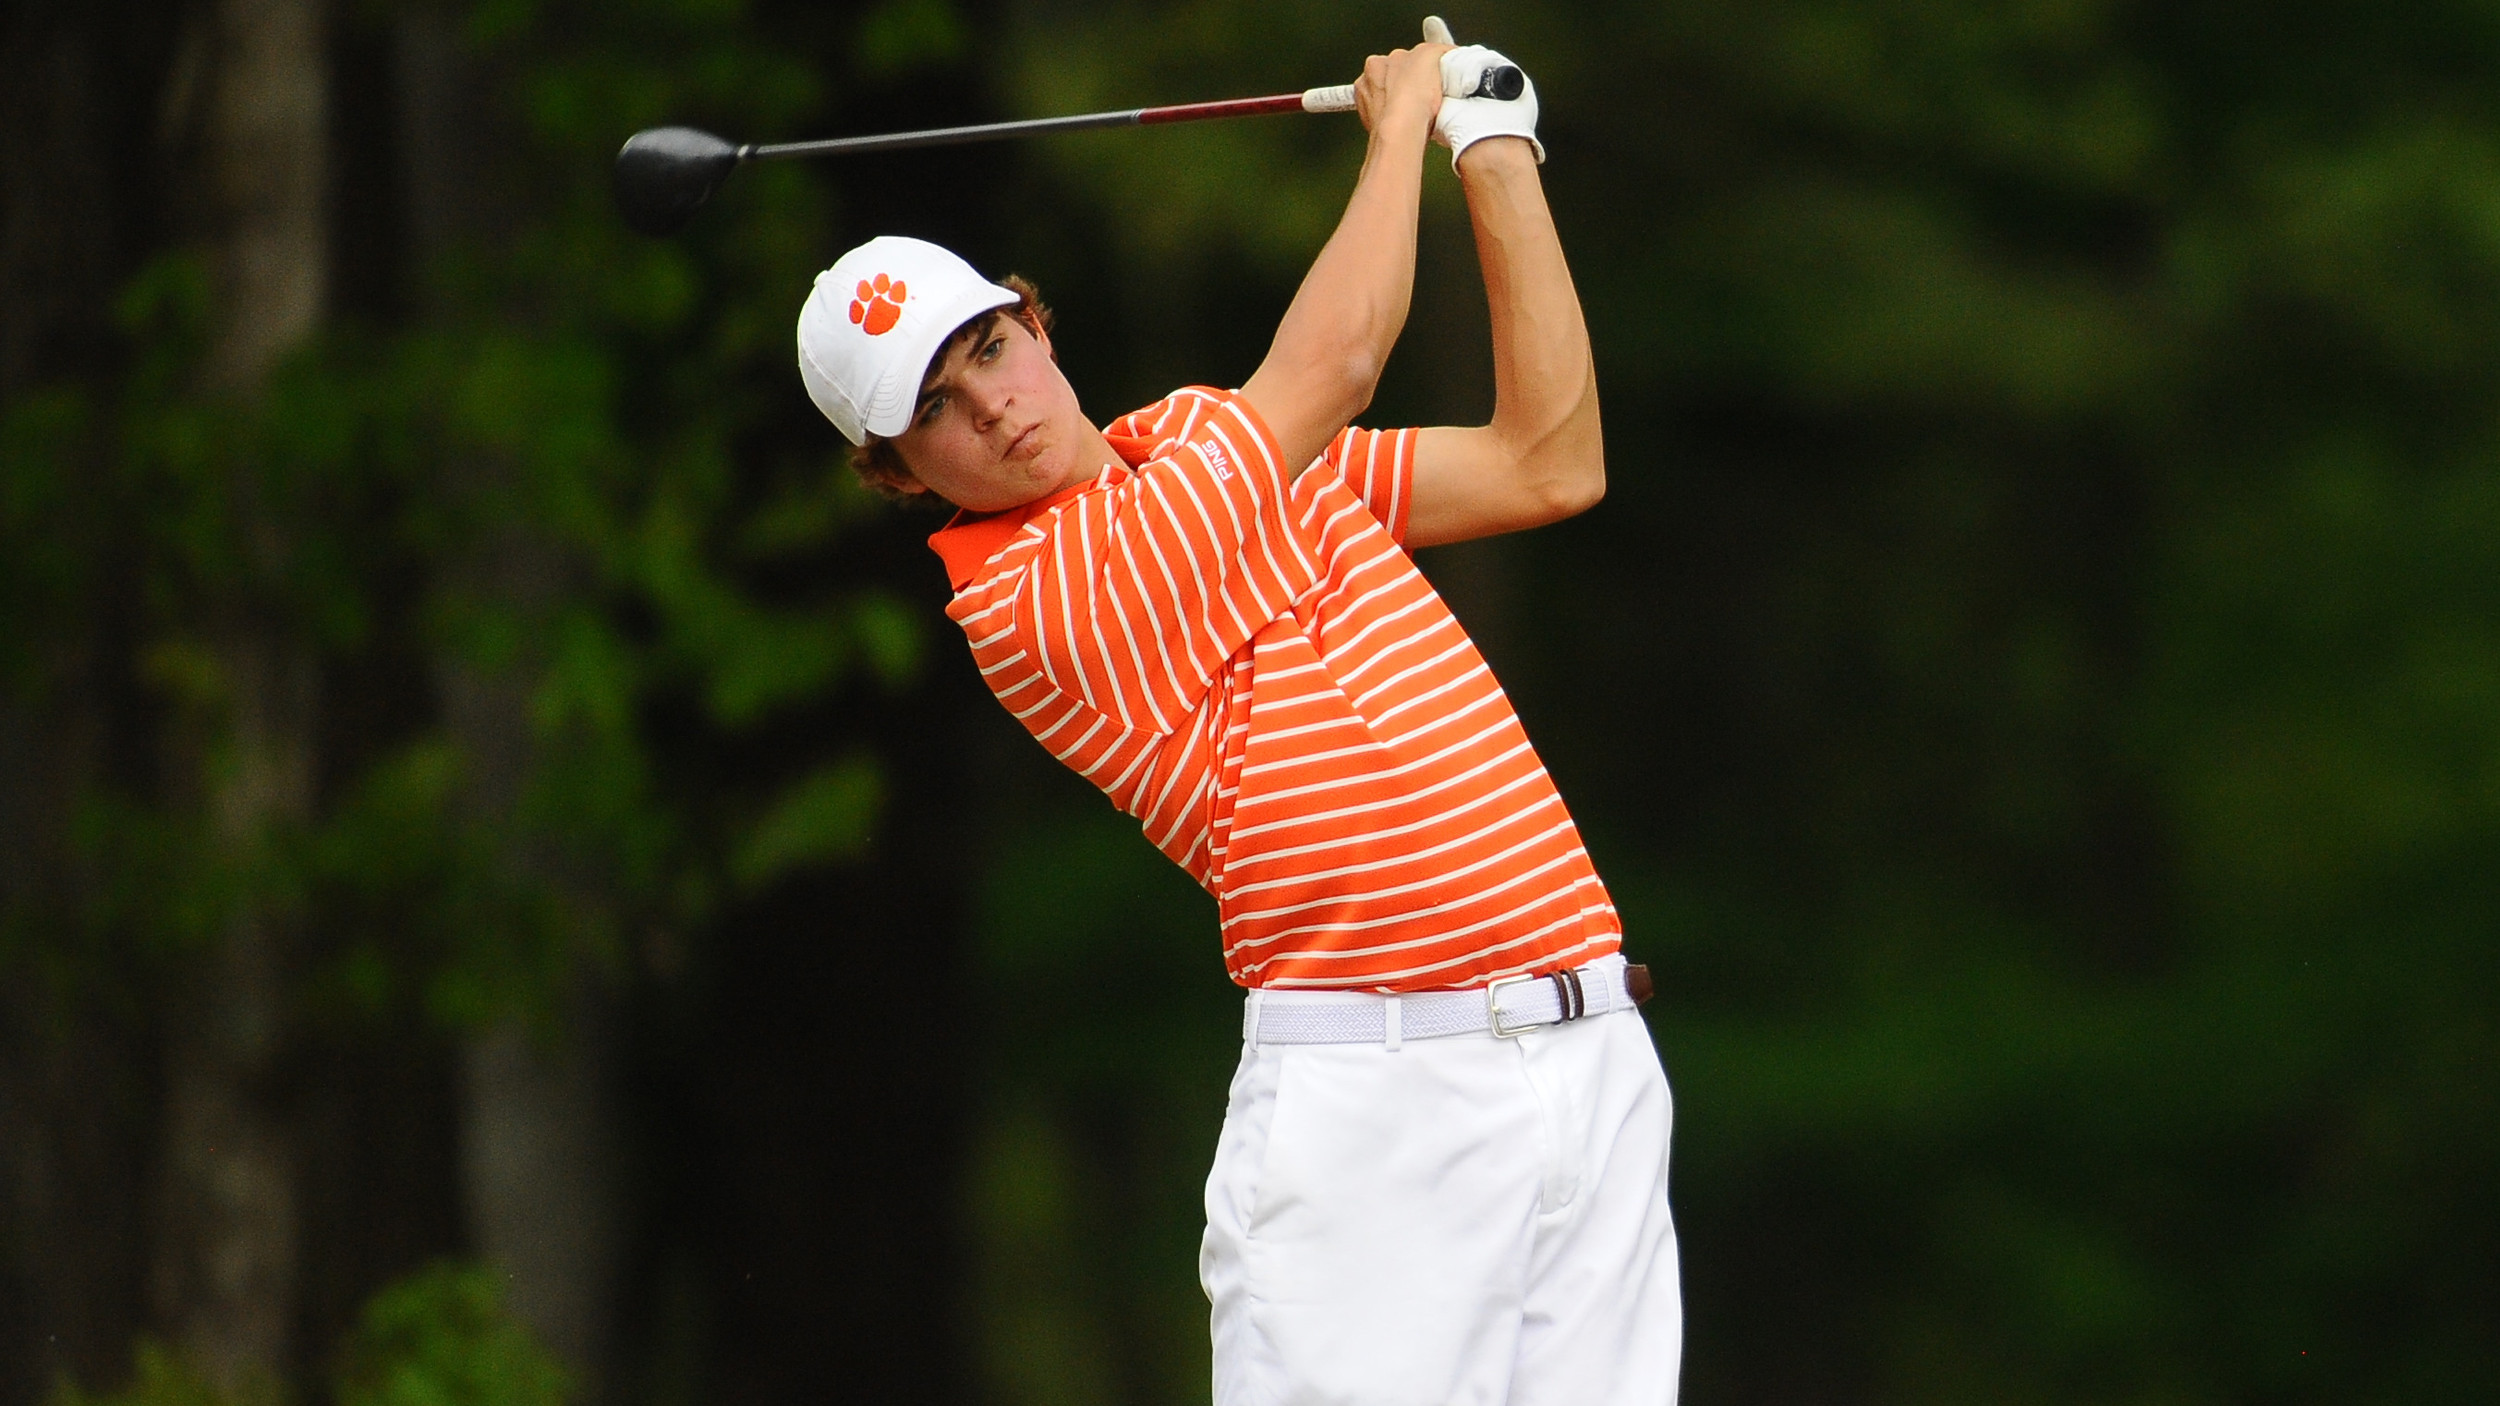 Clemson Third after Day One of NCAA Regional